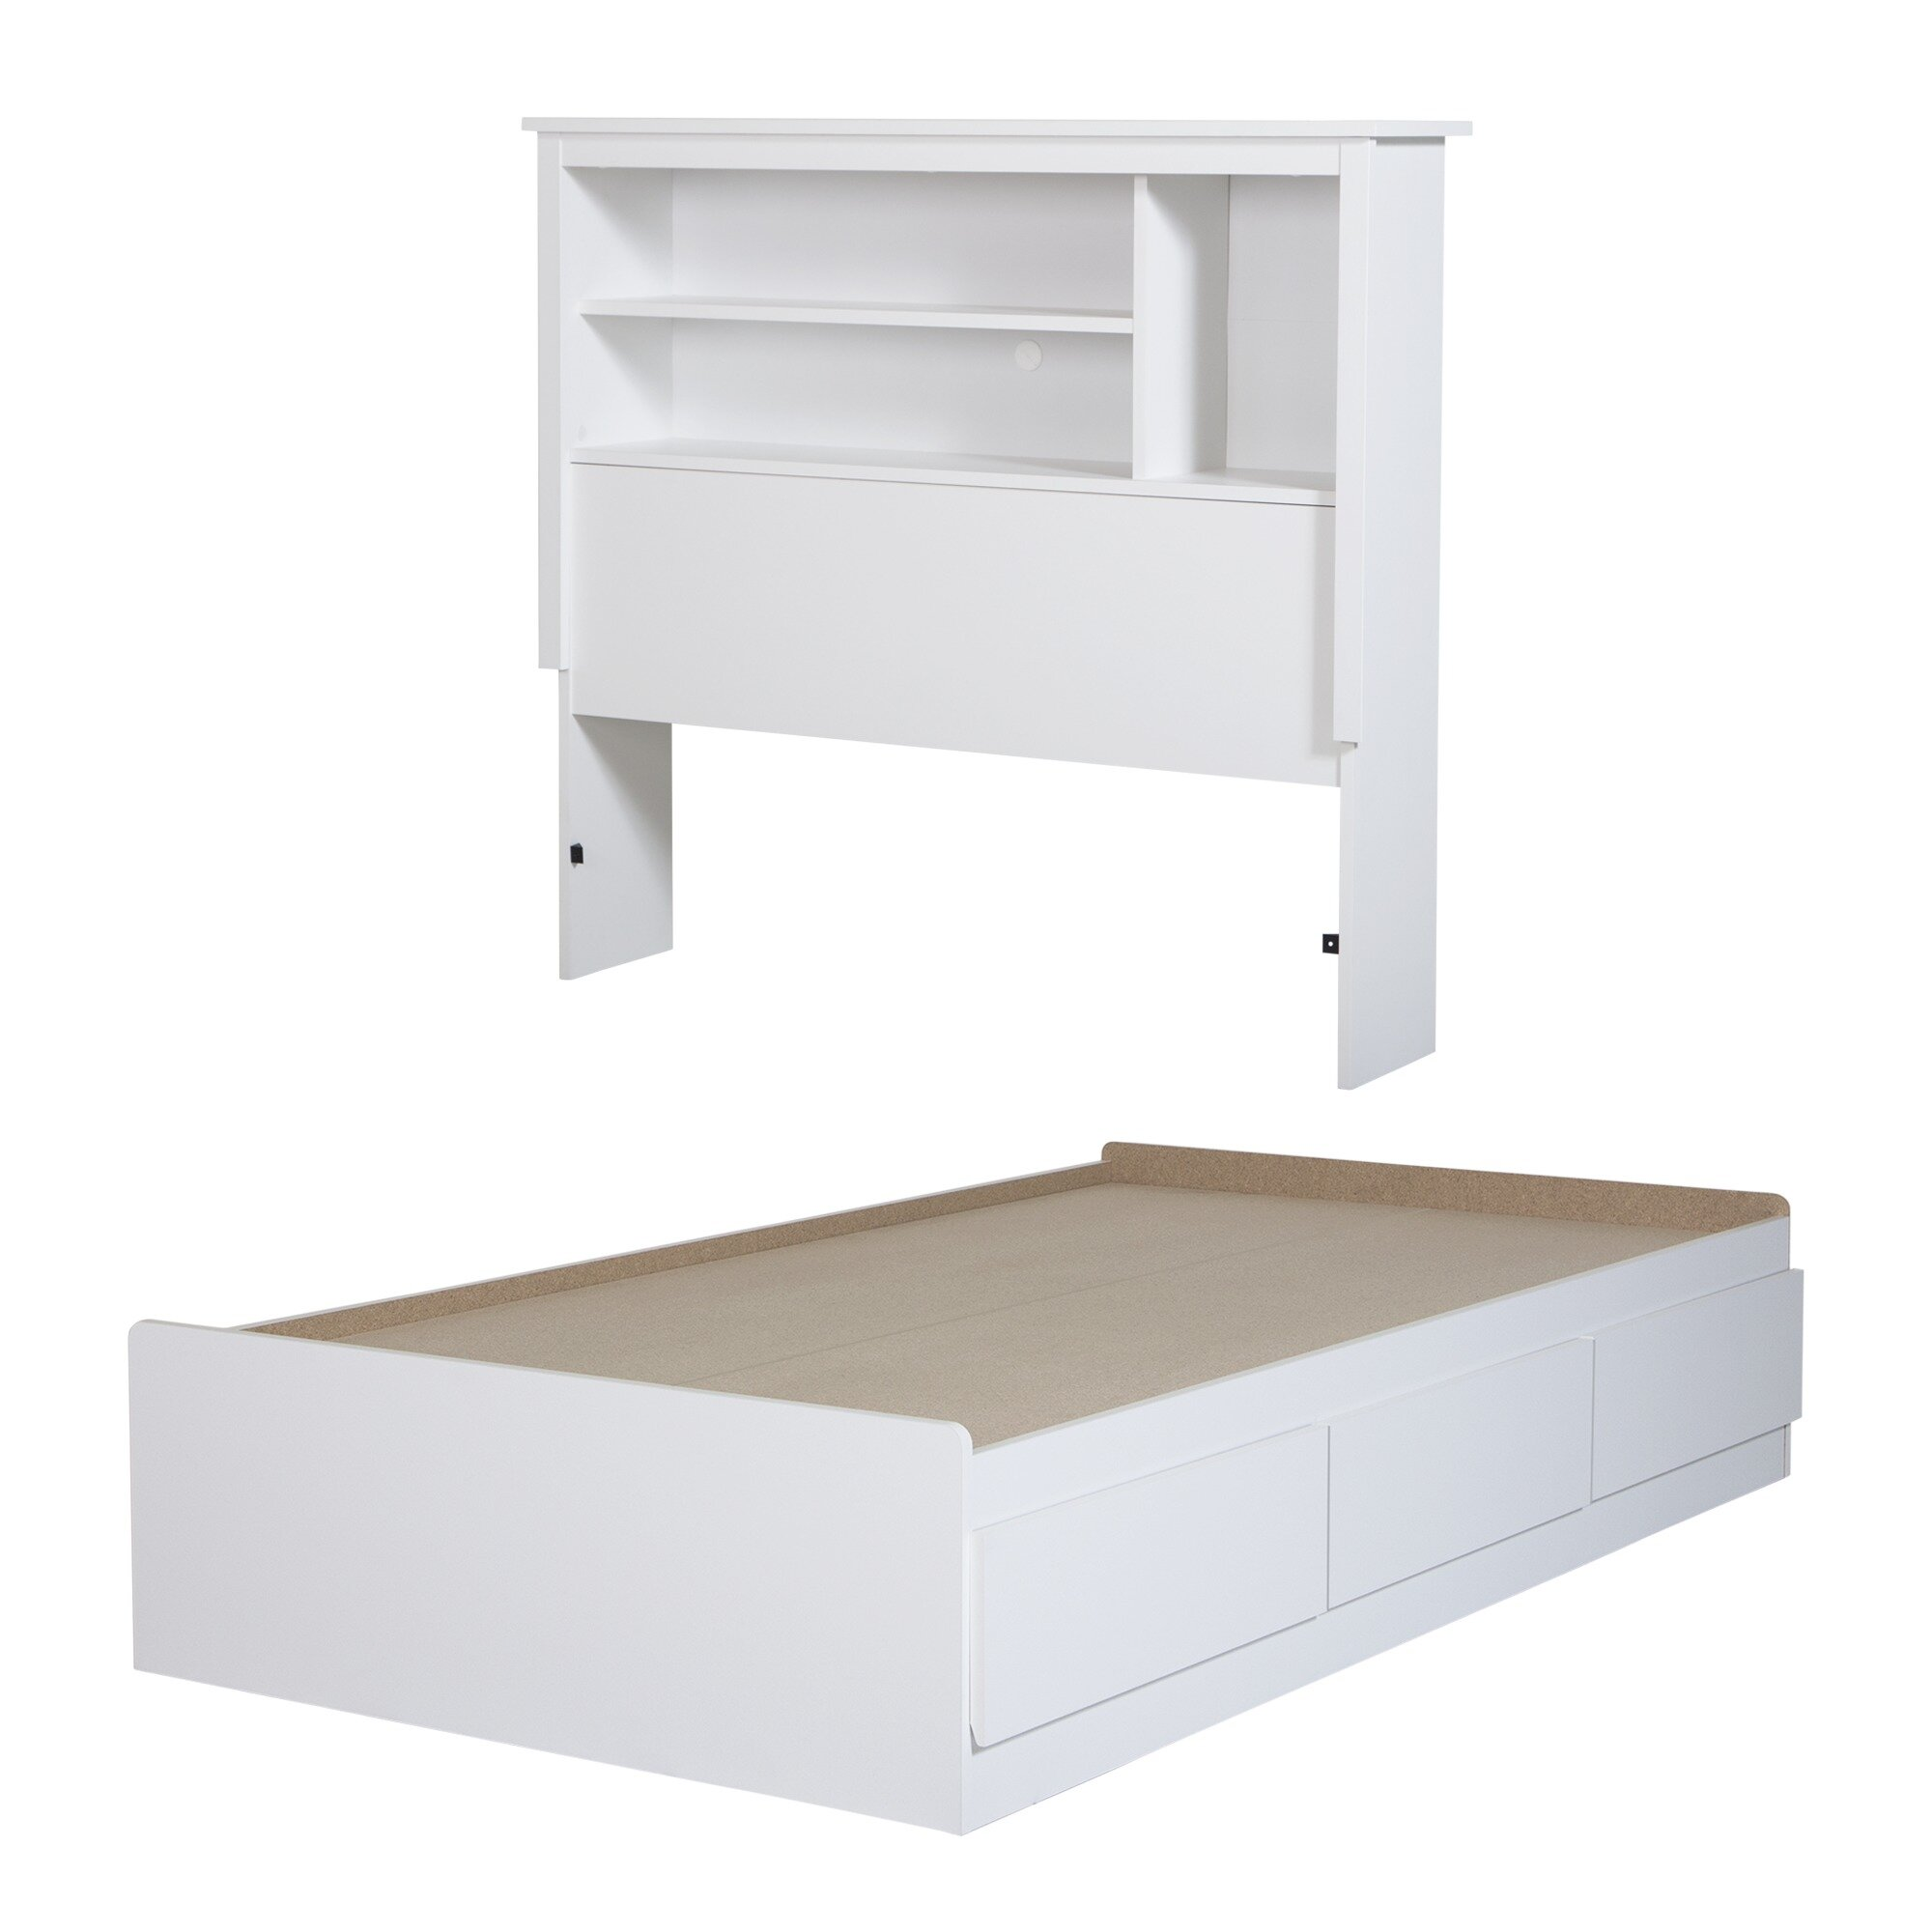 South S Vito Twin Mate Bed With Bookcase Headboard Reviews Wayfair